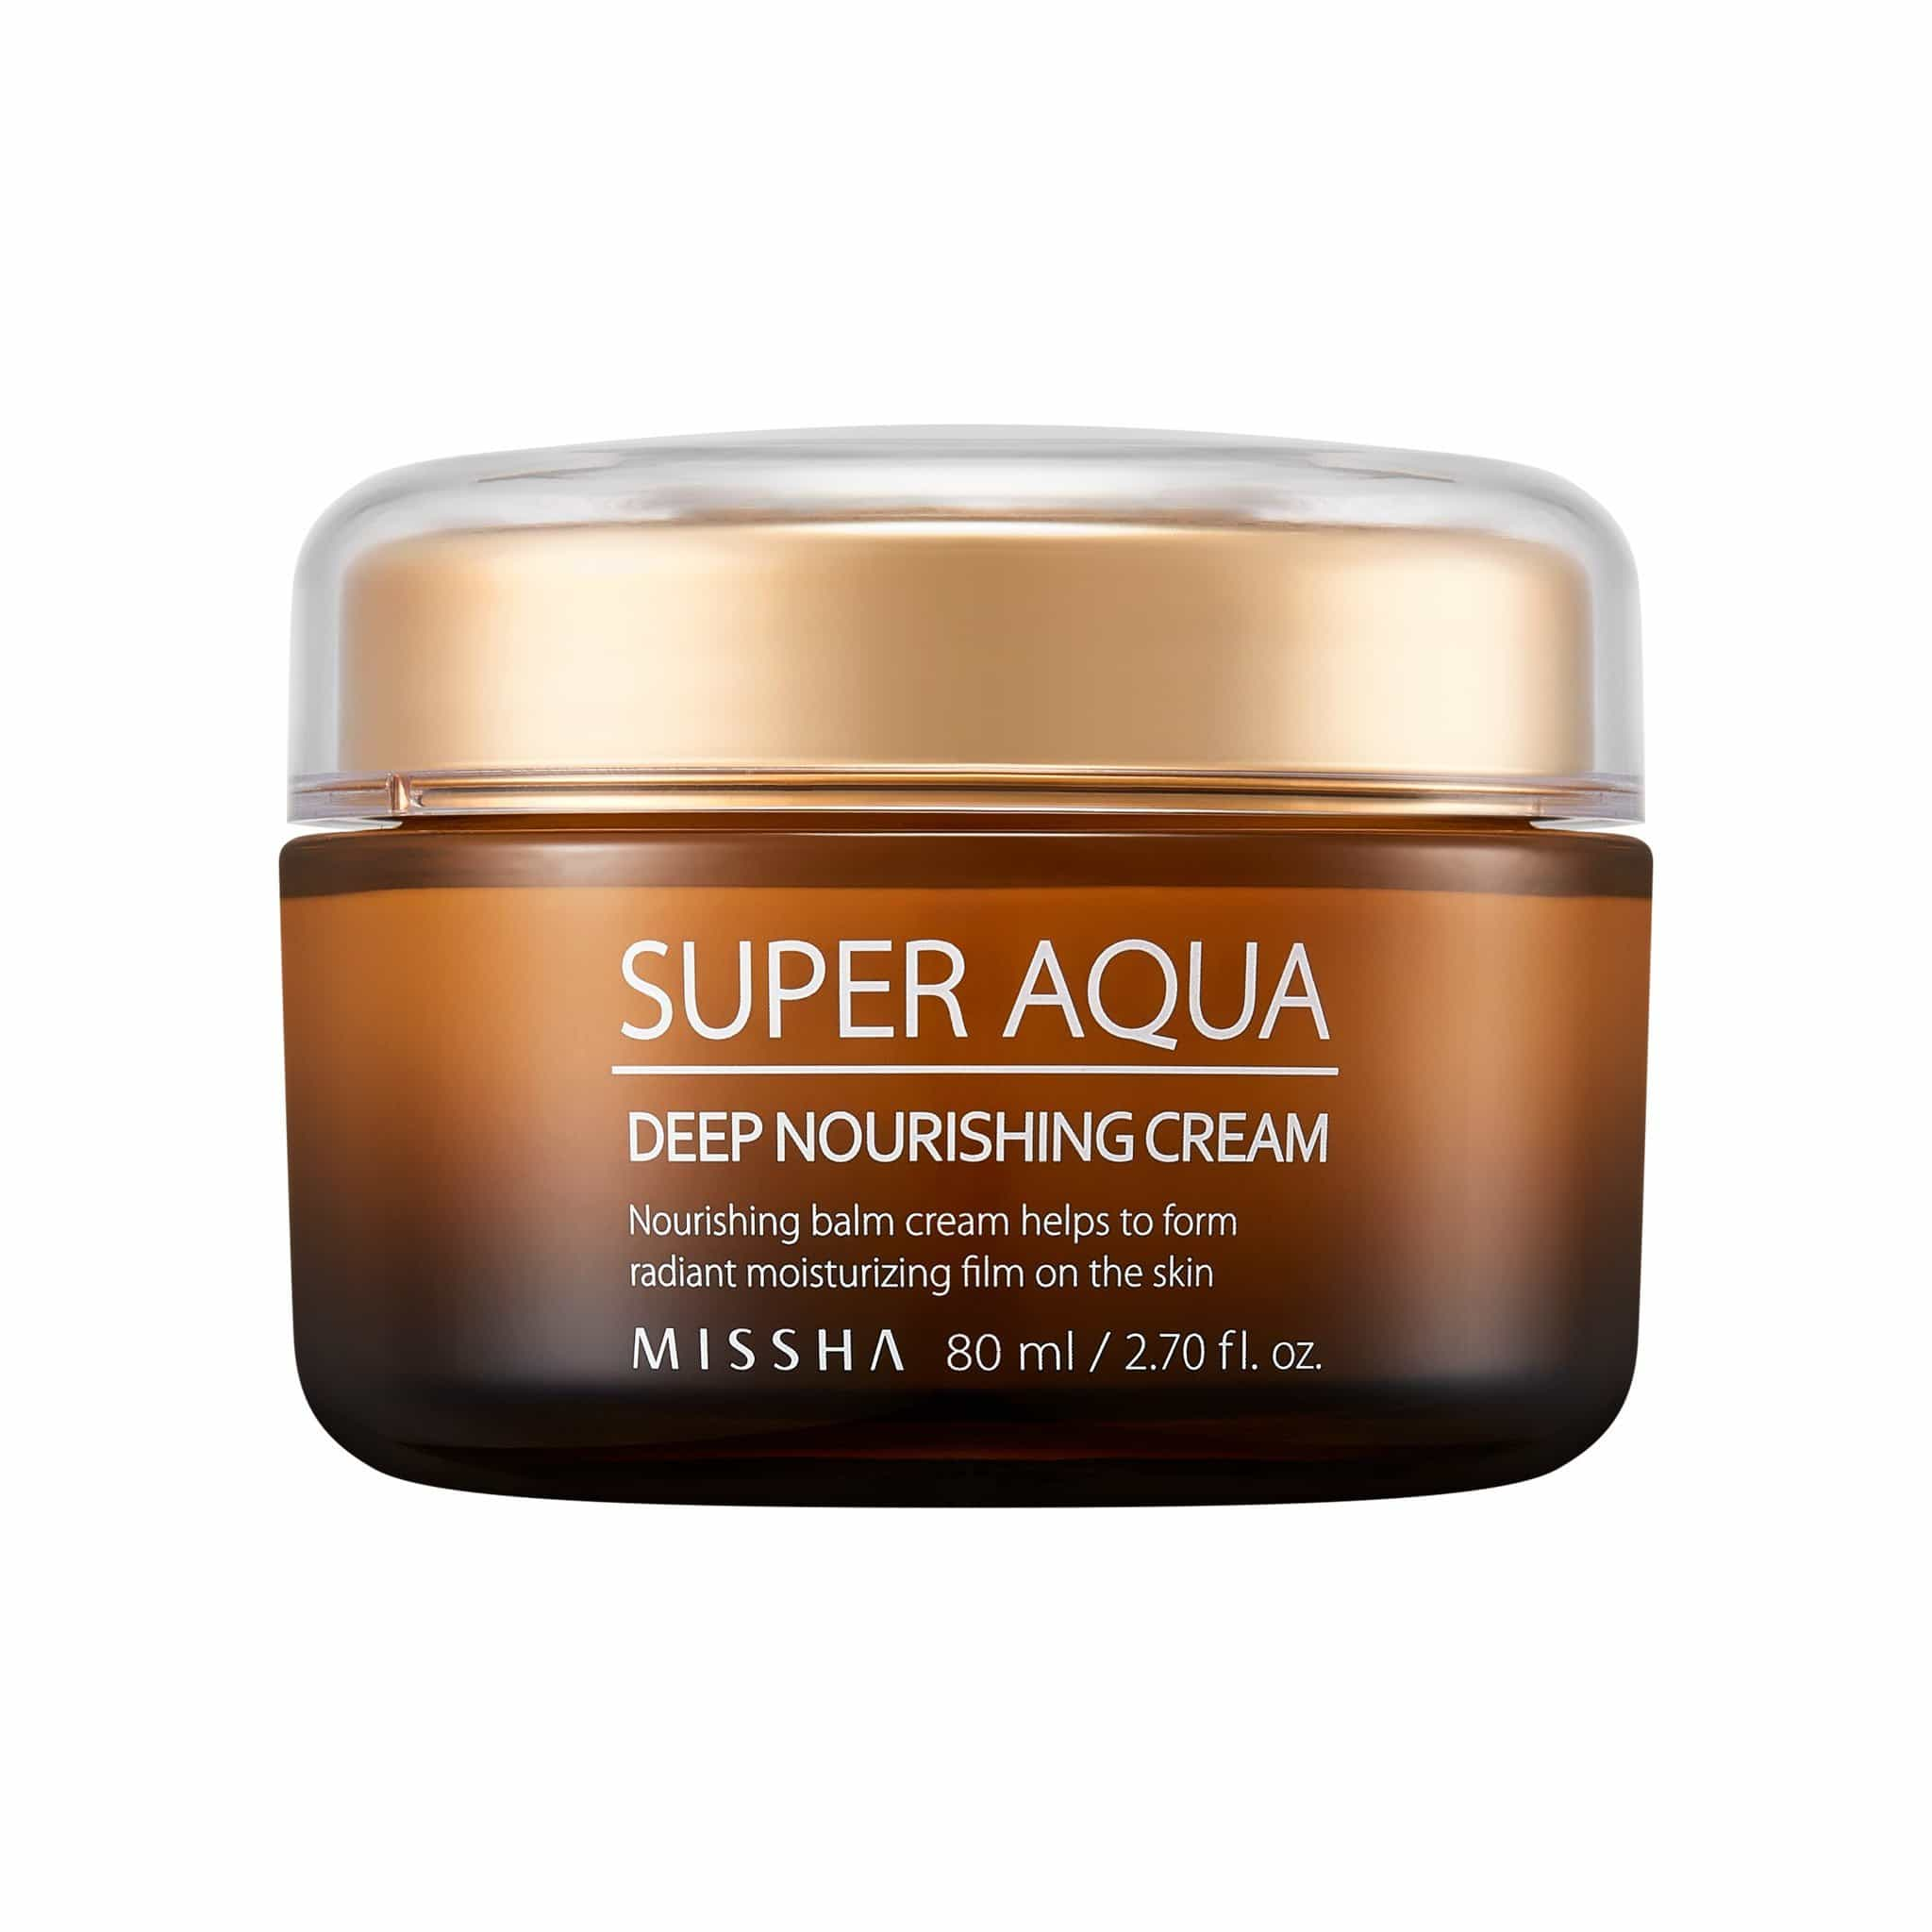 SUPER AQUA ULTRA WATERFUL DEEP NOURISHING CREAM - MISSHA